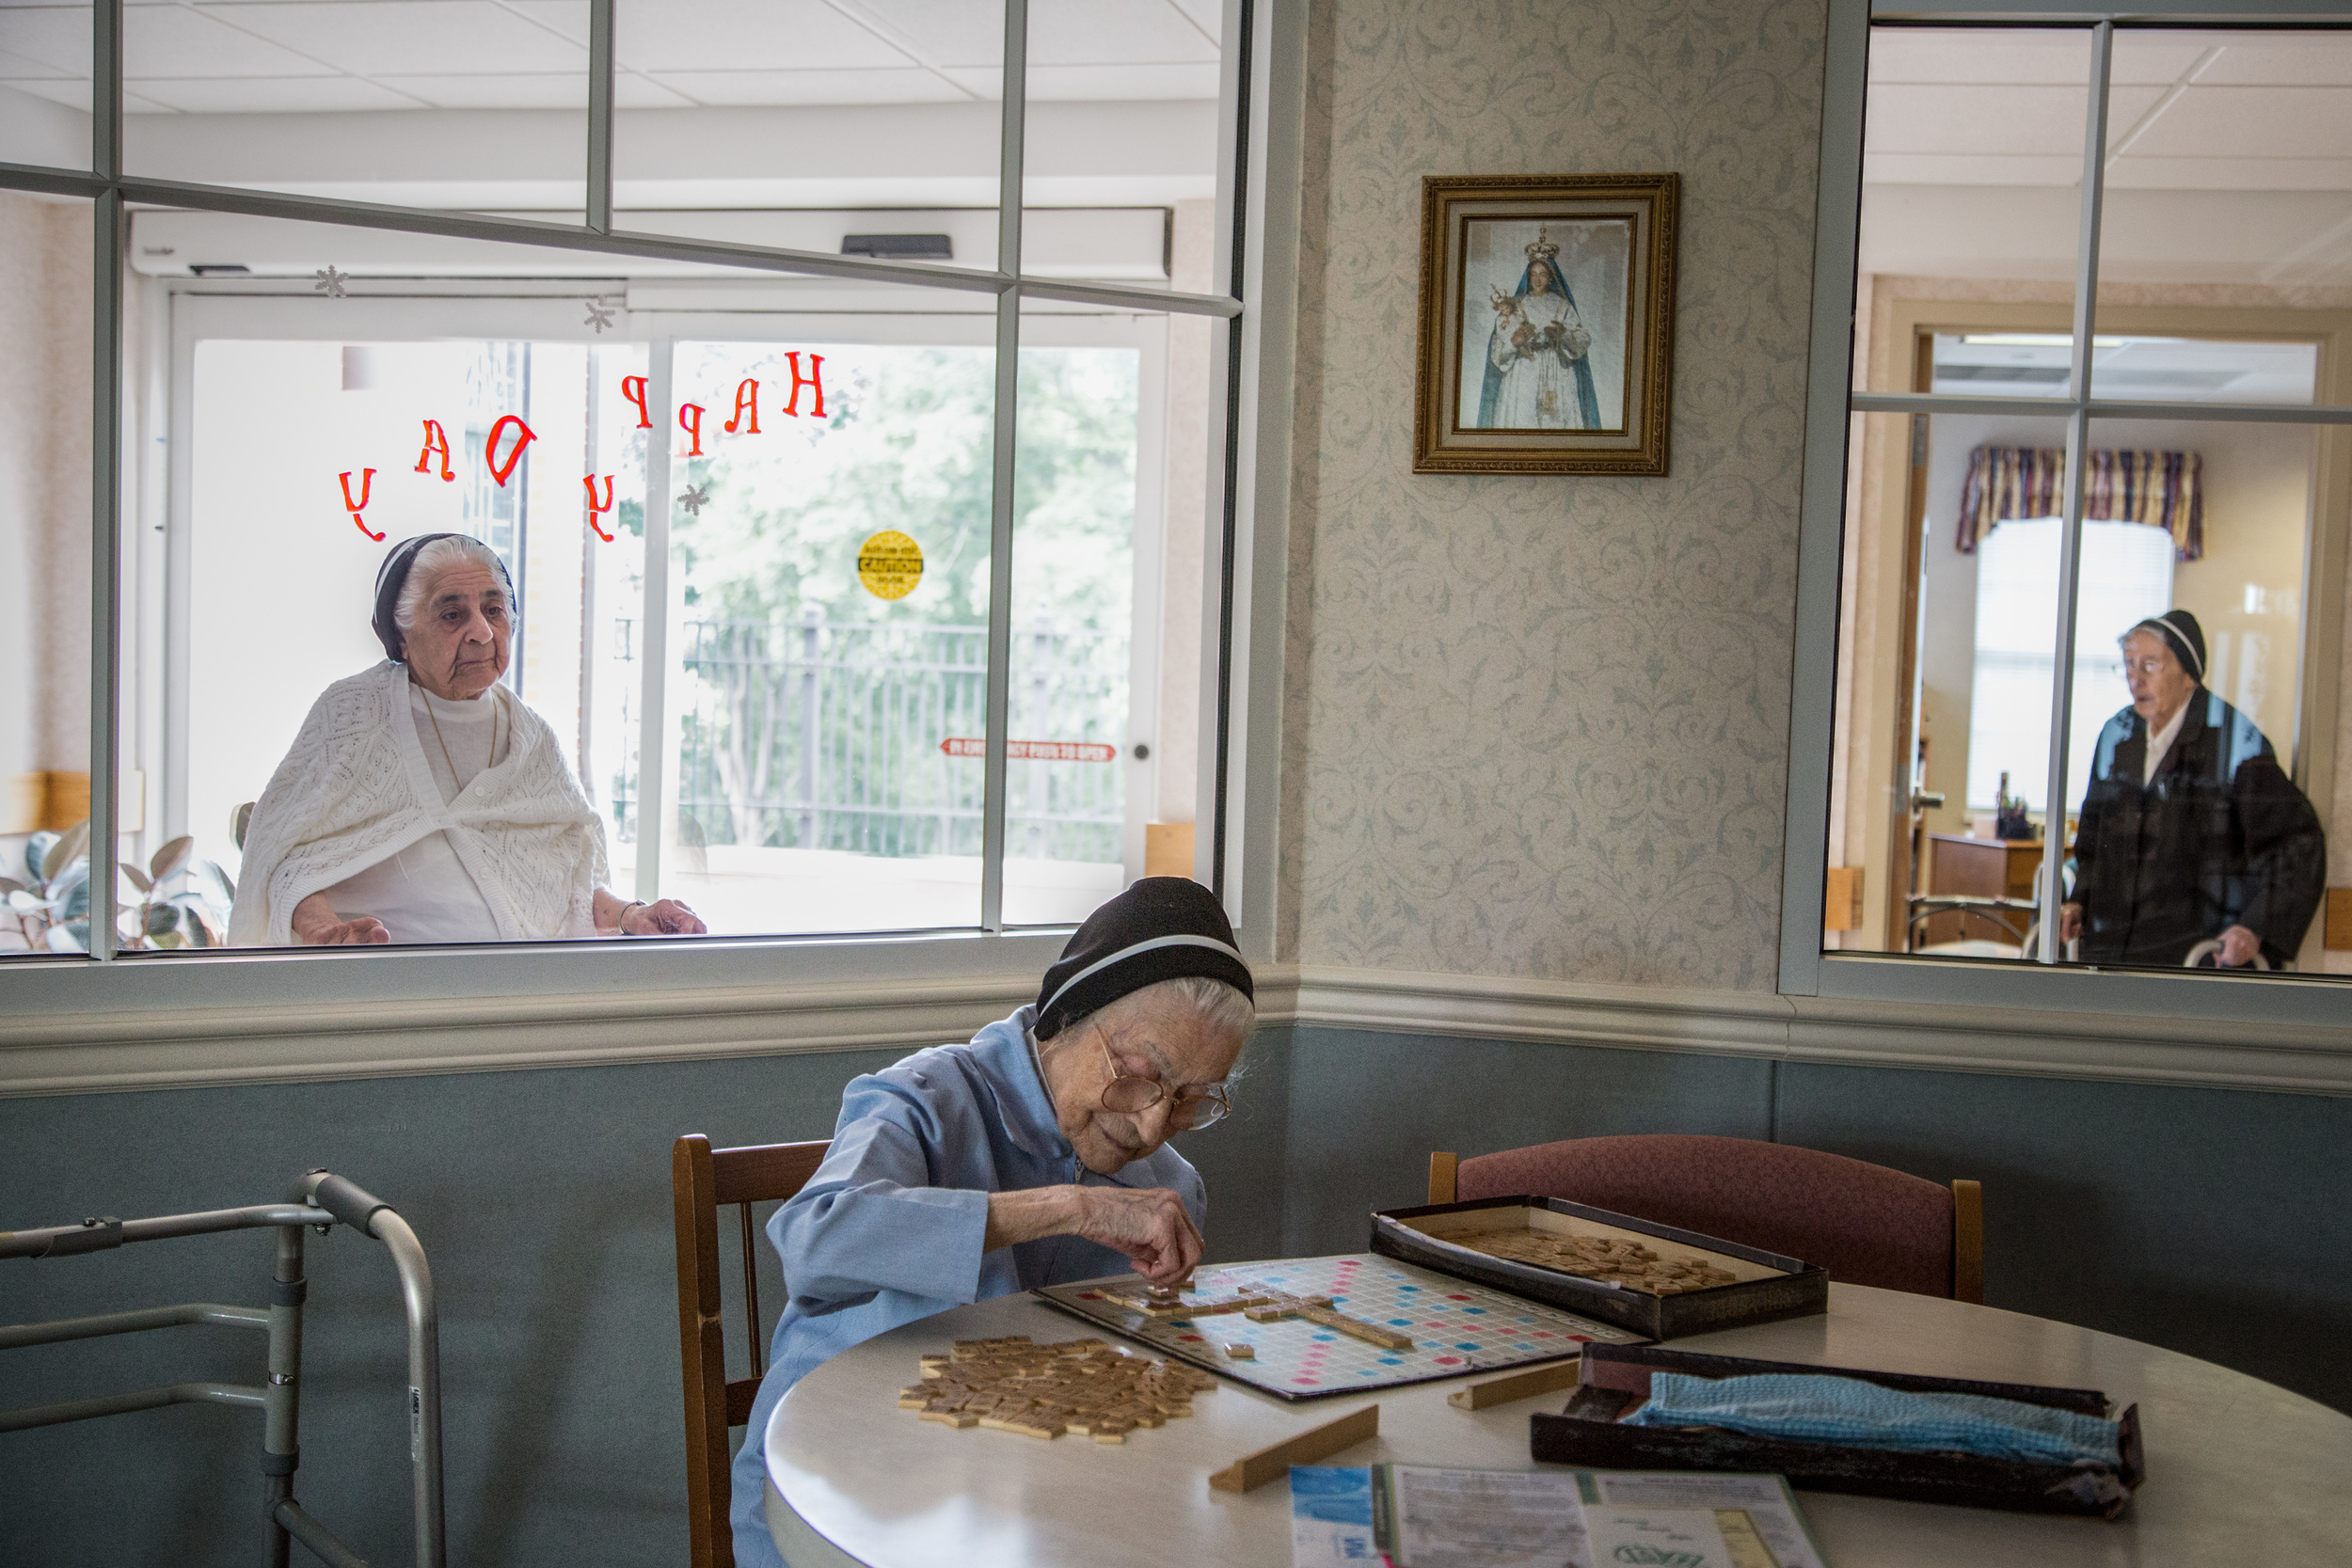 At 100 years of age, Sr. Mary Testa enjoys playing Scrabble every day in the Infirmary's Community Room. The scattered tiles spell words related to teaching such as: schools, teachers, pupils, books, girls, boys, and years.